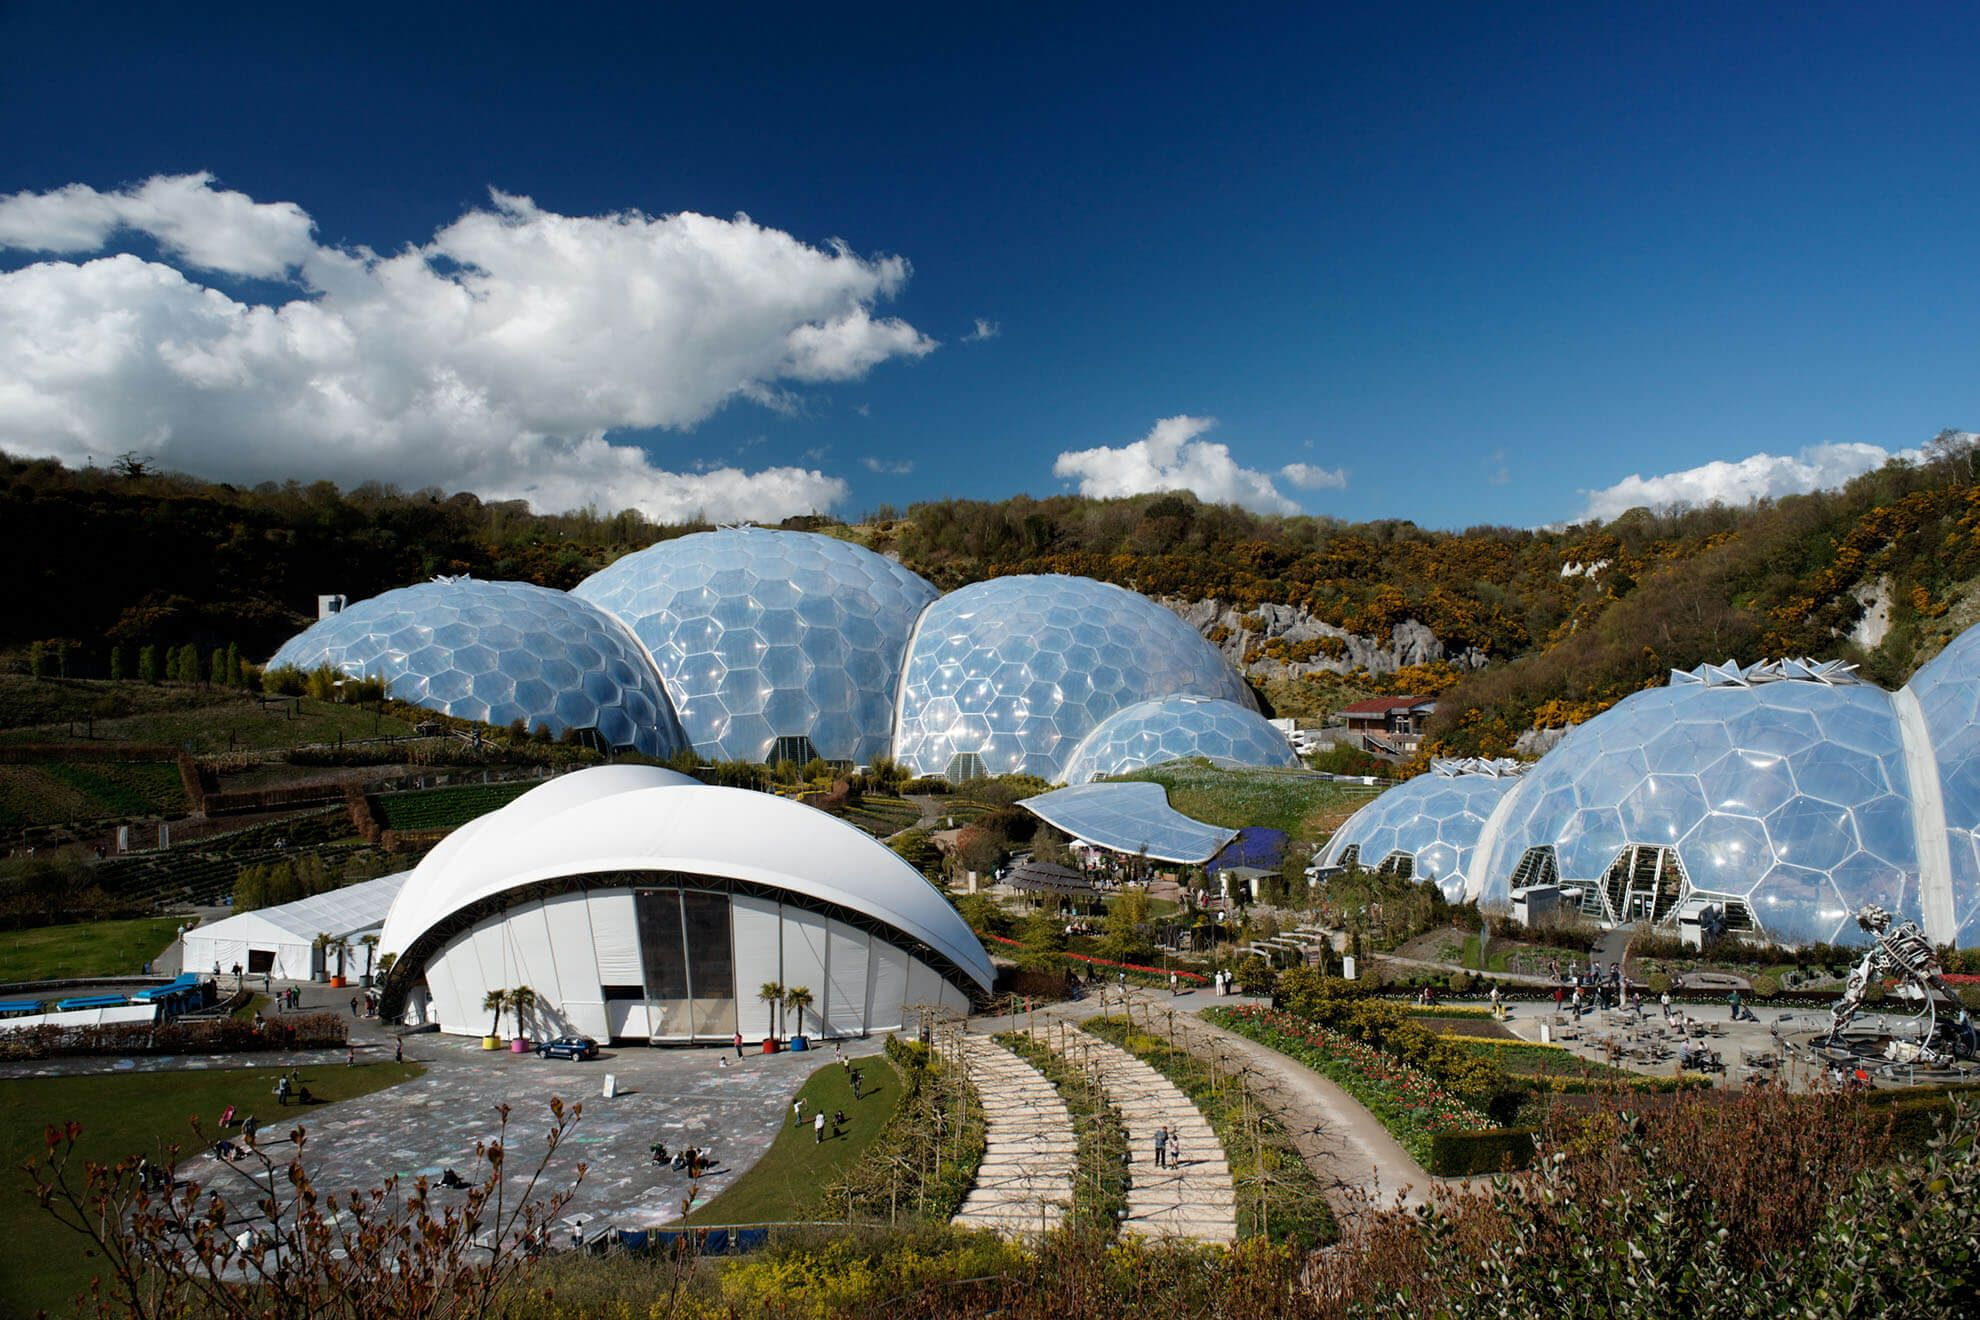 The Eden Project is a fun family out with themed events according to the seasons